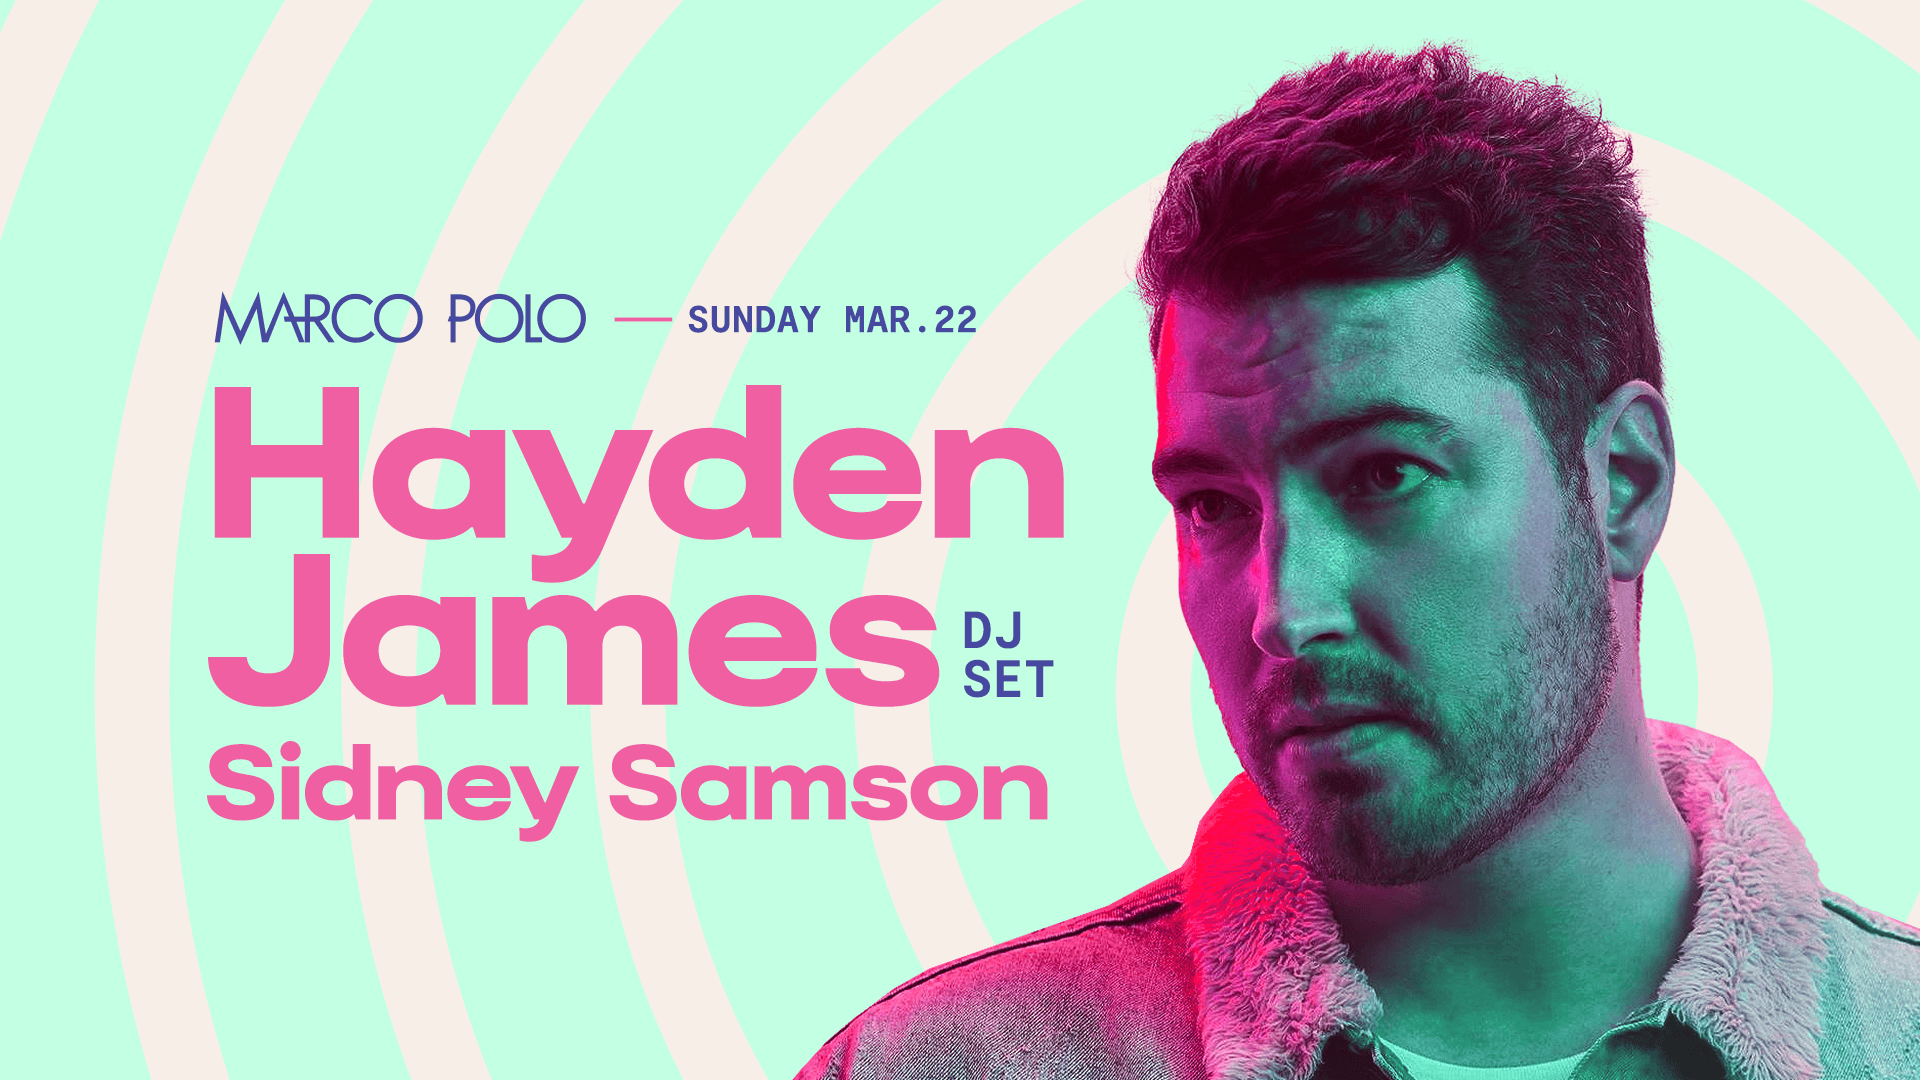 Tickets for CANCELLED: Marco Polo ft. Hayden James (DJ Set) in Sydney from Merivale